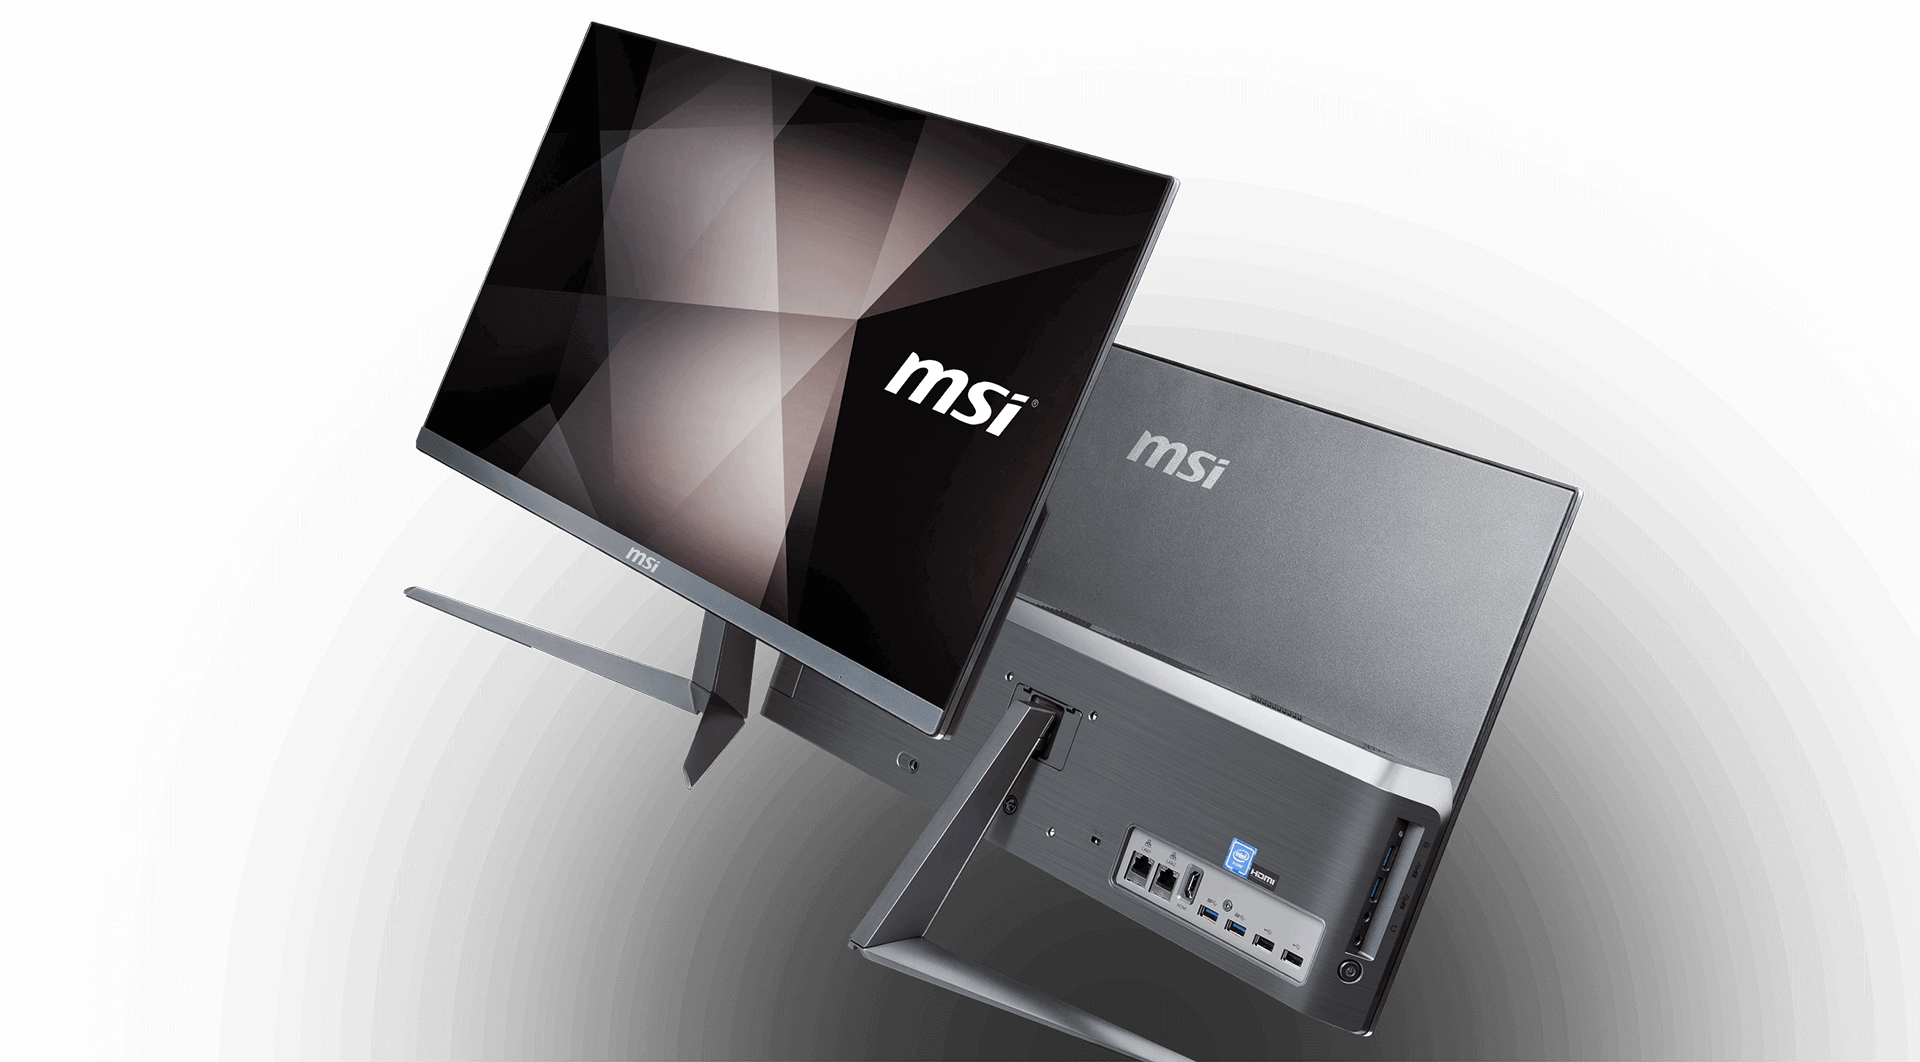 https://www.msi.com/All-in-One-PCs